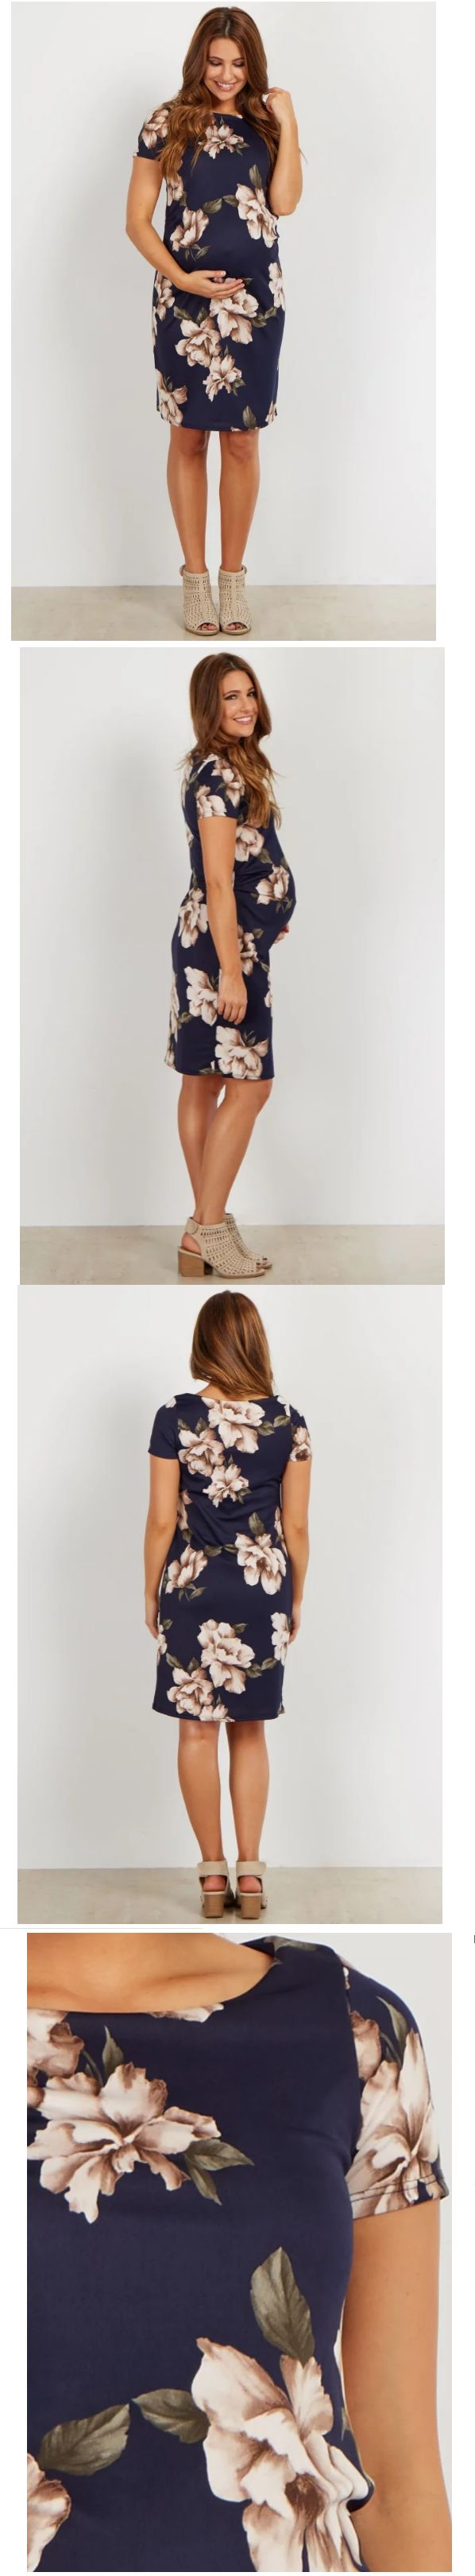 920 best dresses 11534 images on pinterest curve maternity dresses 11534 pinkblush navy floral fitted maternity dress navy blue size m style hd182651 ombrellifo Image collections